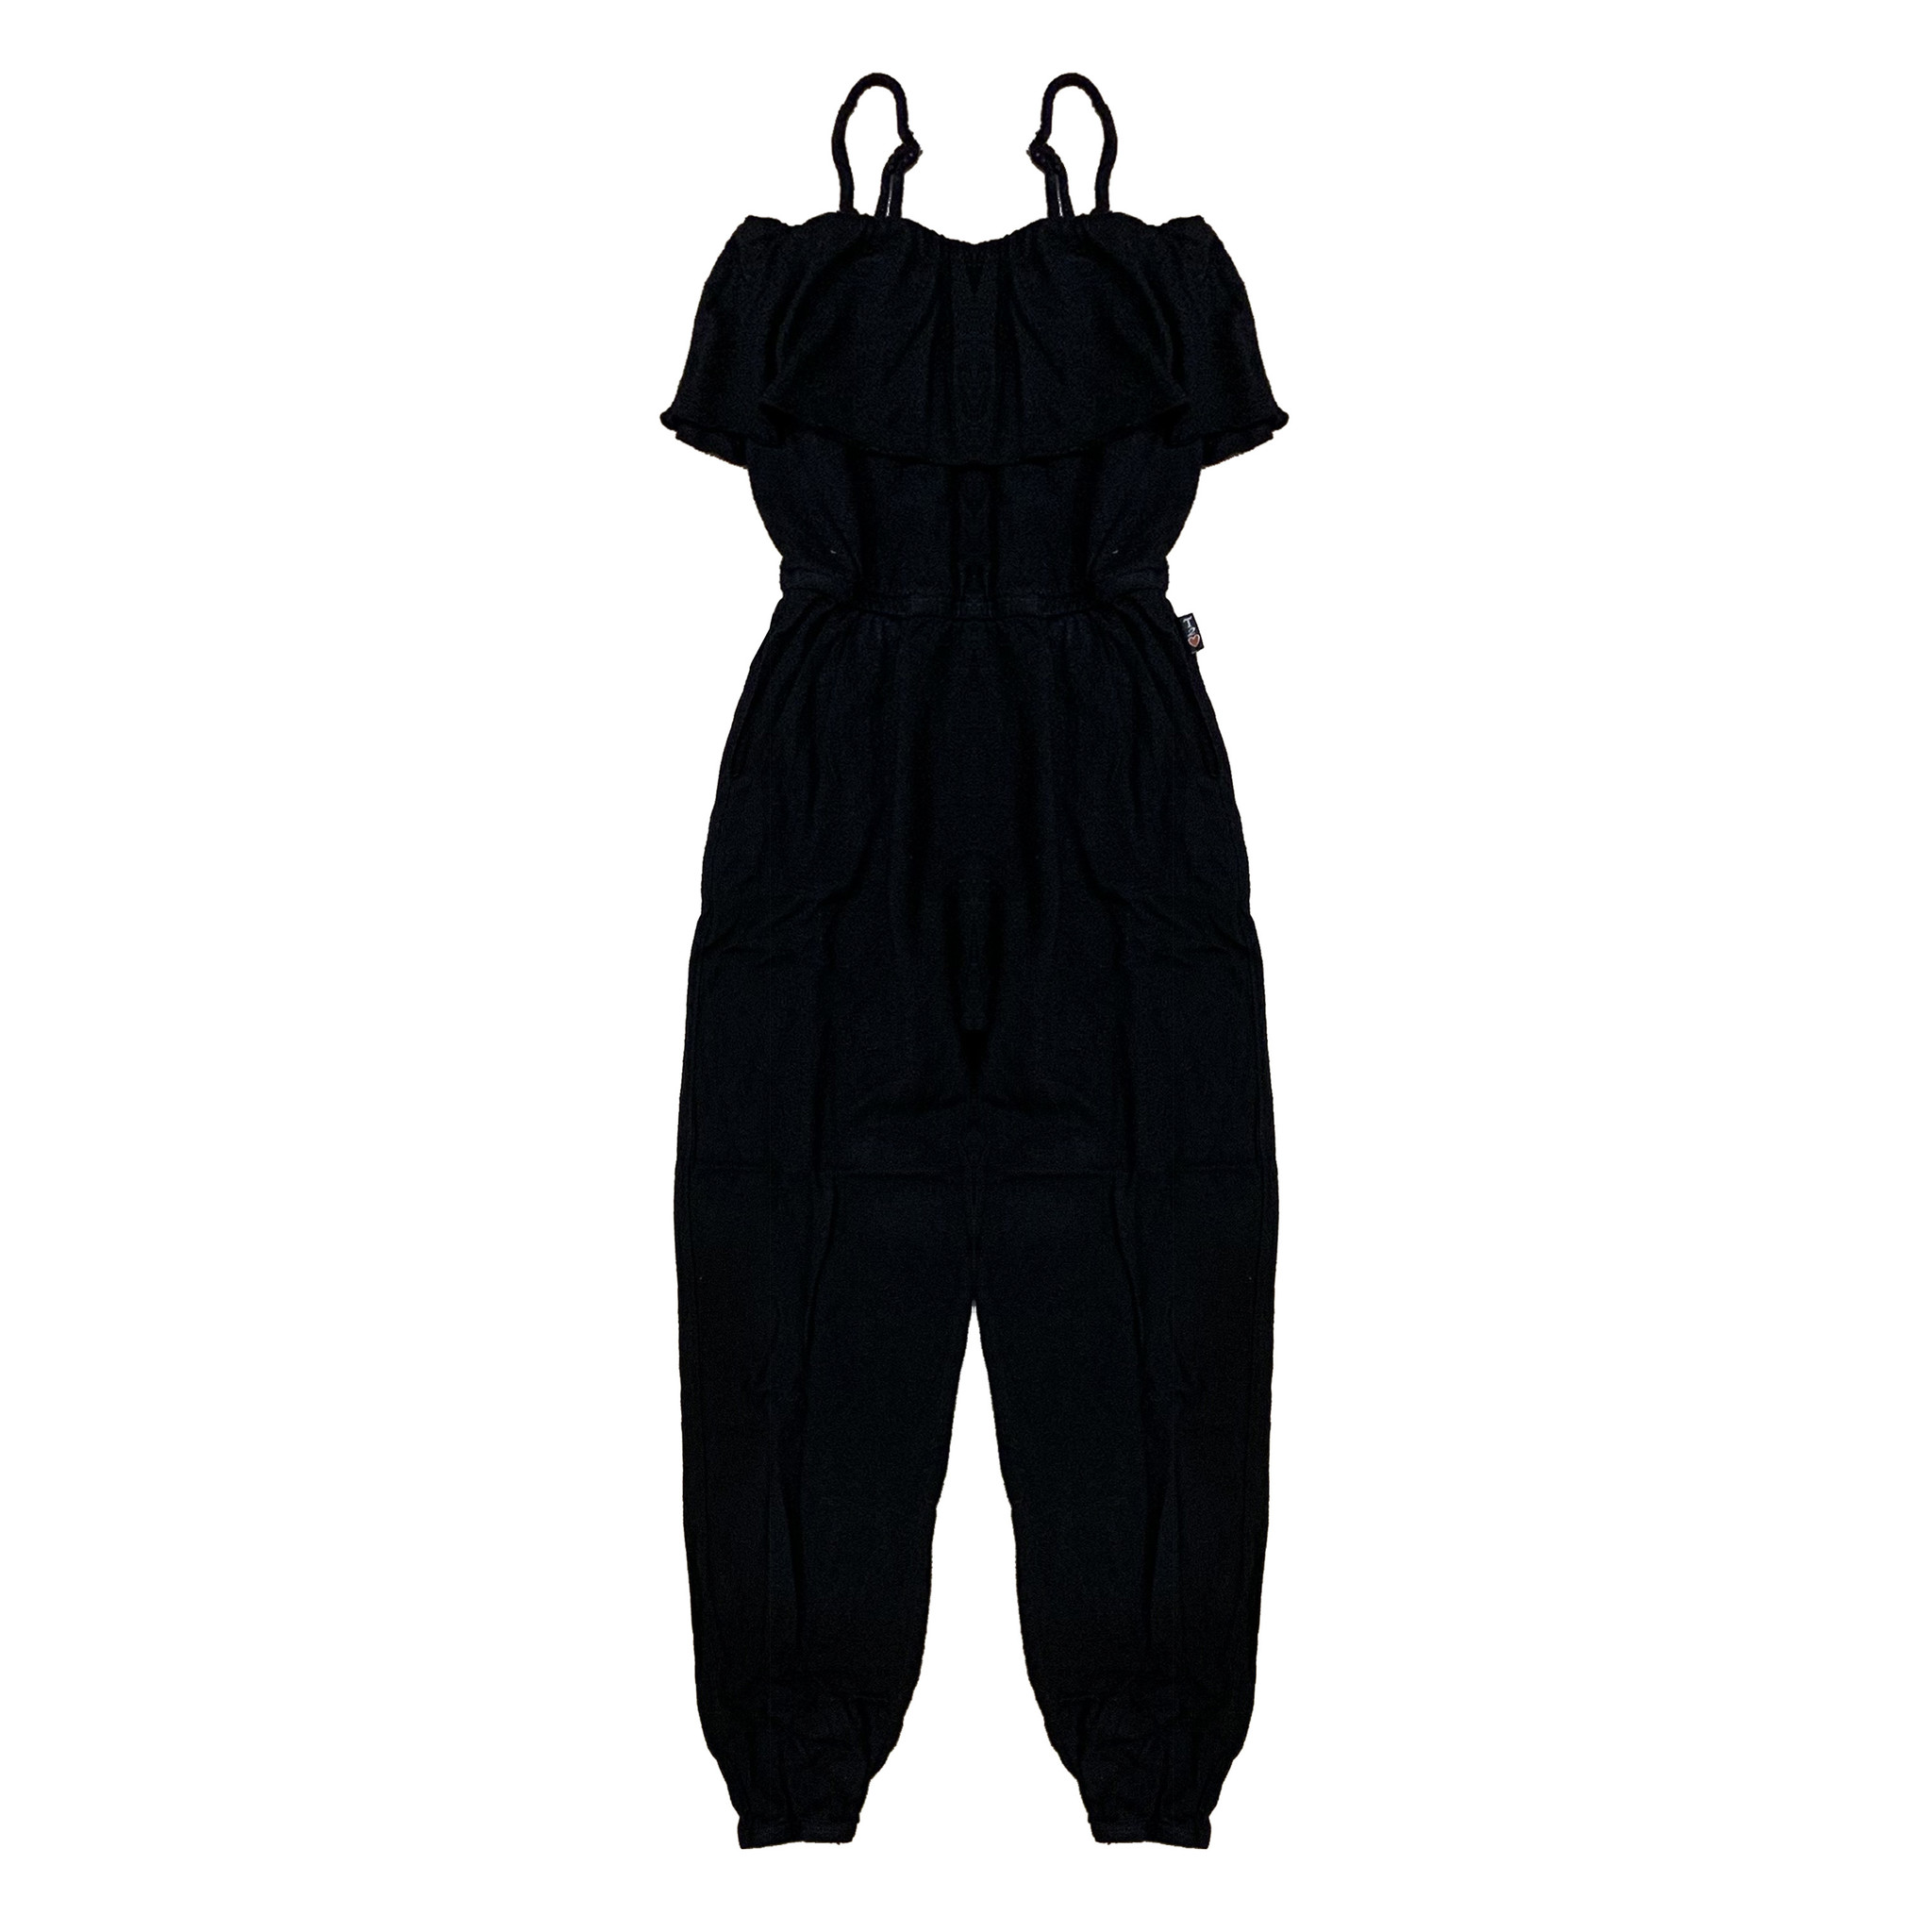 T2Love Black Ruffle Jumpsuit